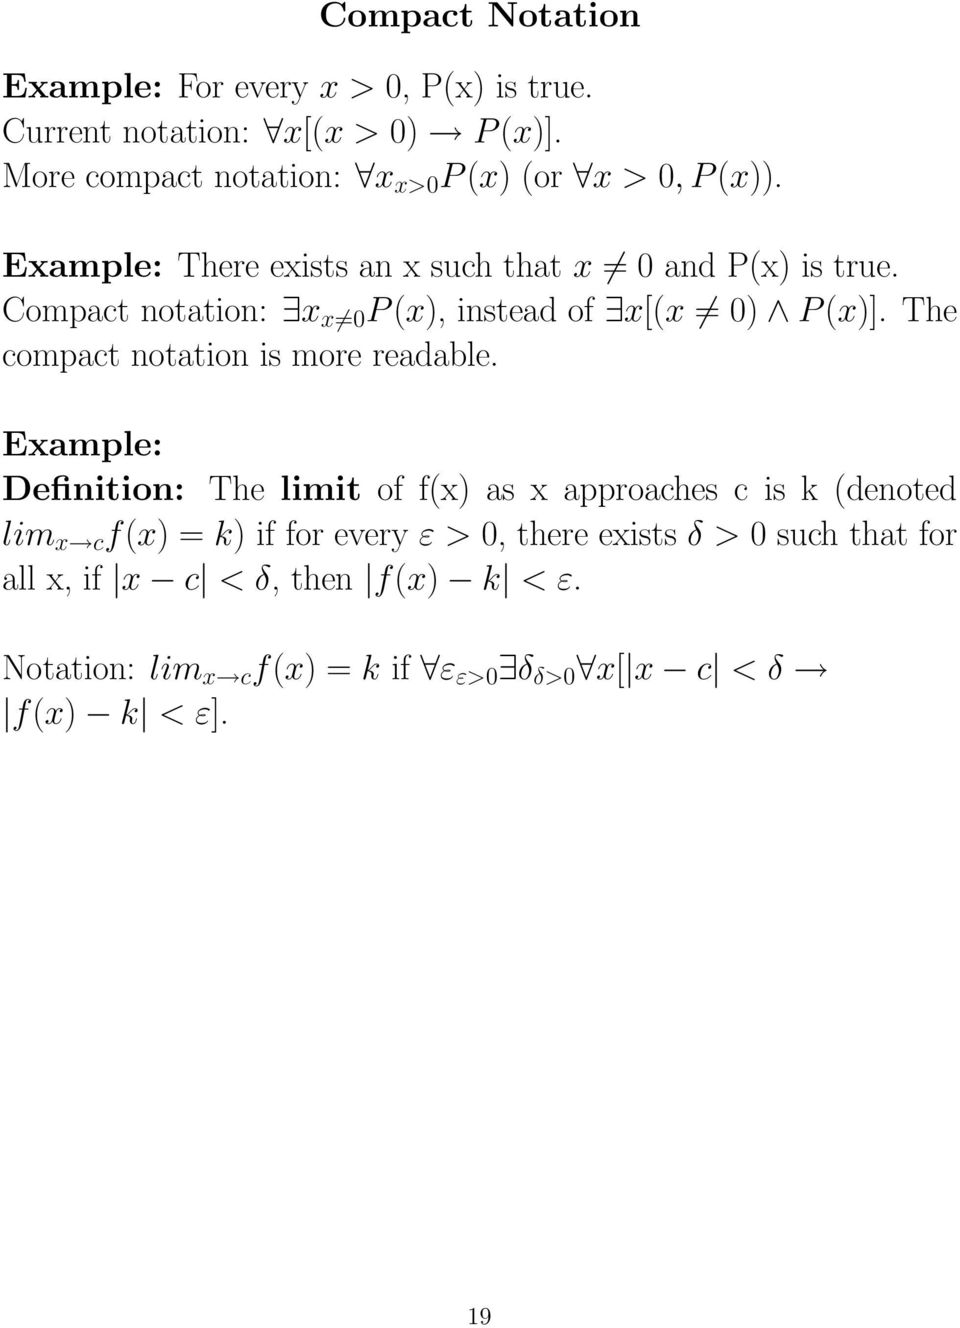 Compact notation: x x =0 P(x), instead of x[(x 0) P(x)]. The compact notation is more readable.